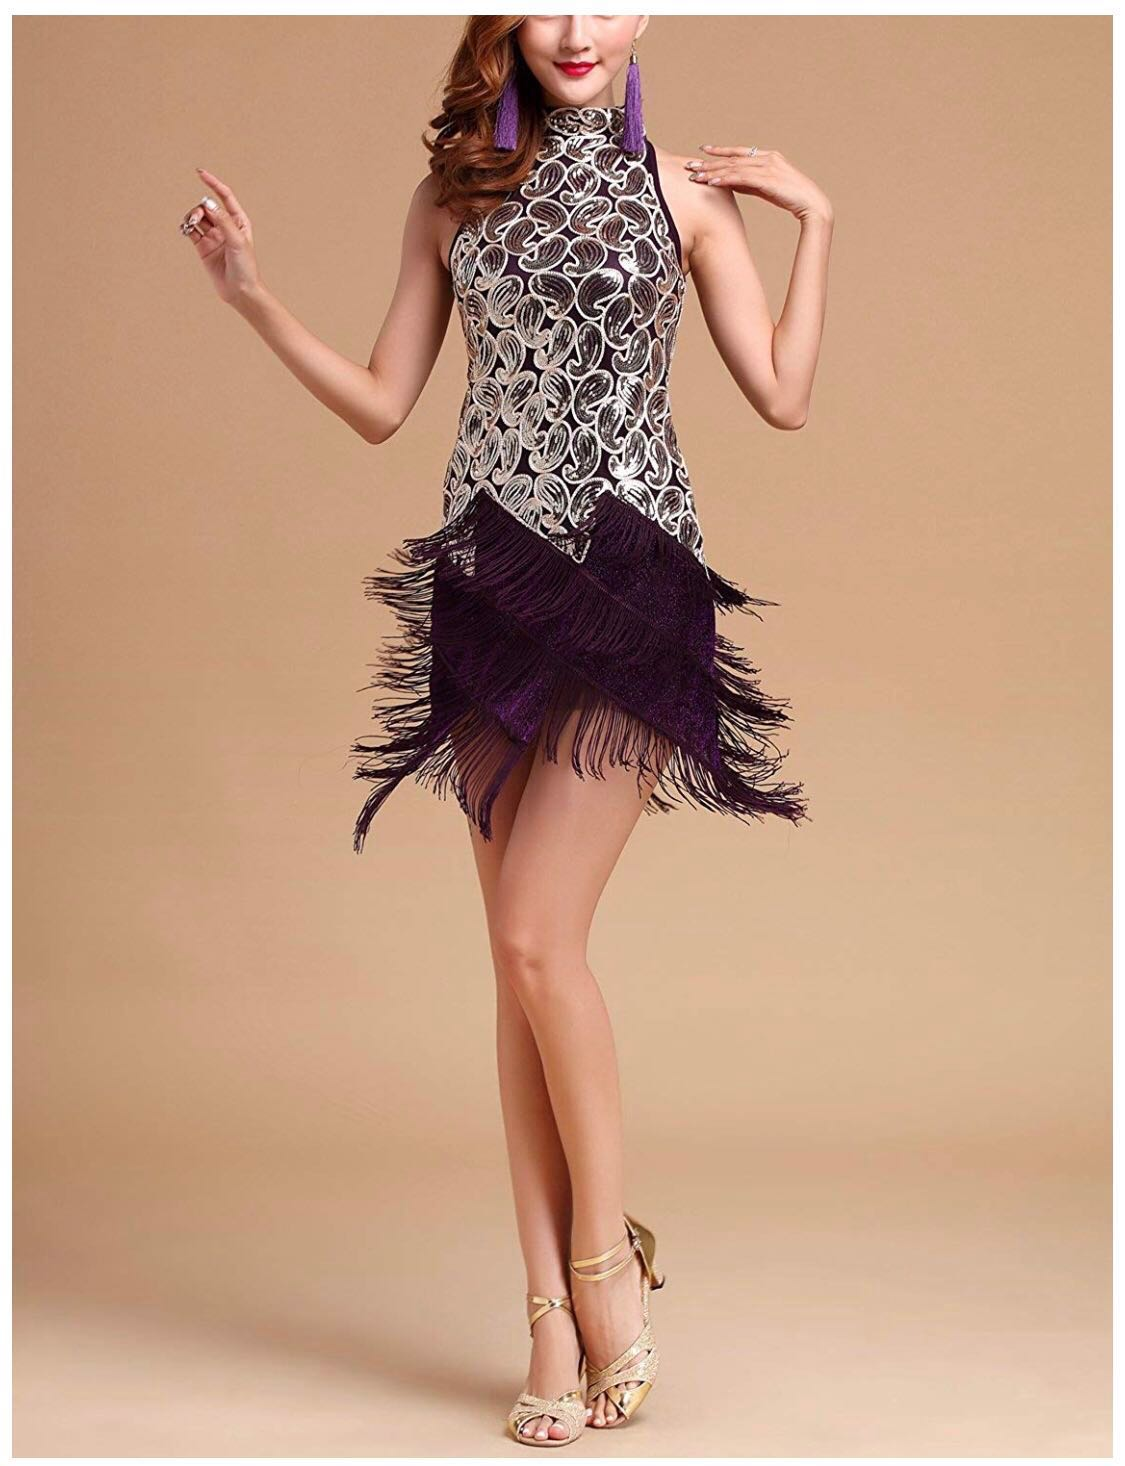 6583862c Gatsby Theme Roaring 1920s 20s Sequin Tassel Paisley Flapper Girl Costume  Dress, Women's Fashion, Clothes, Dresses & Skirts on Carousell